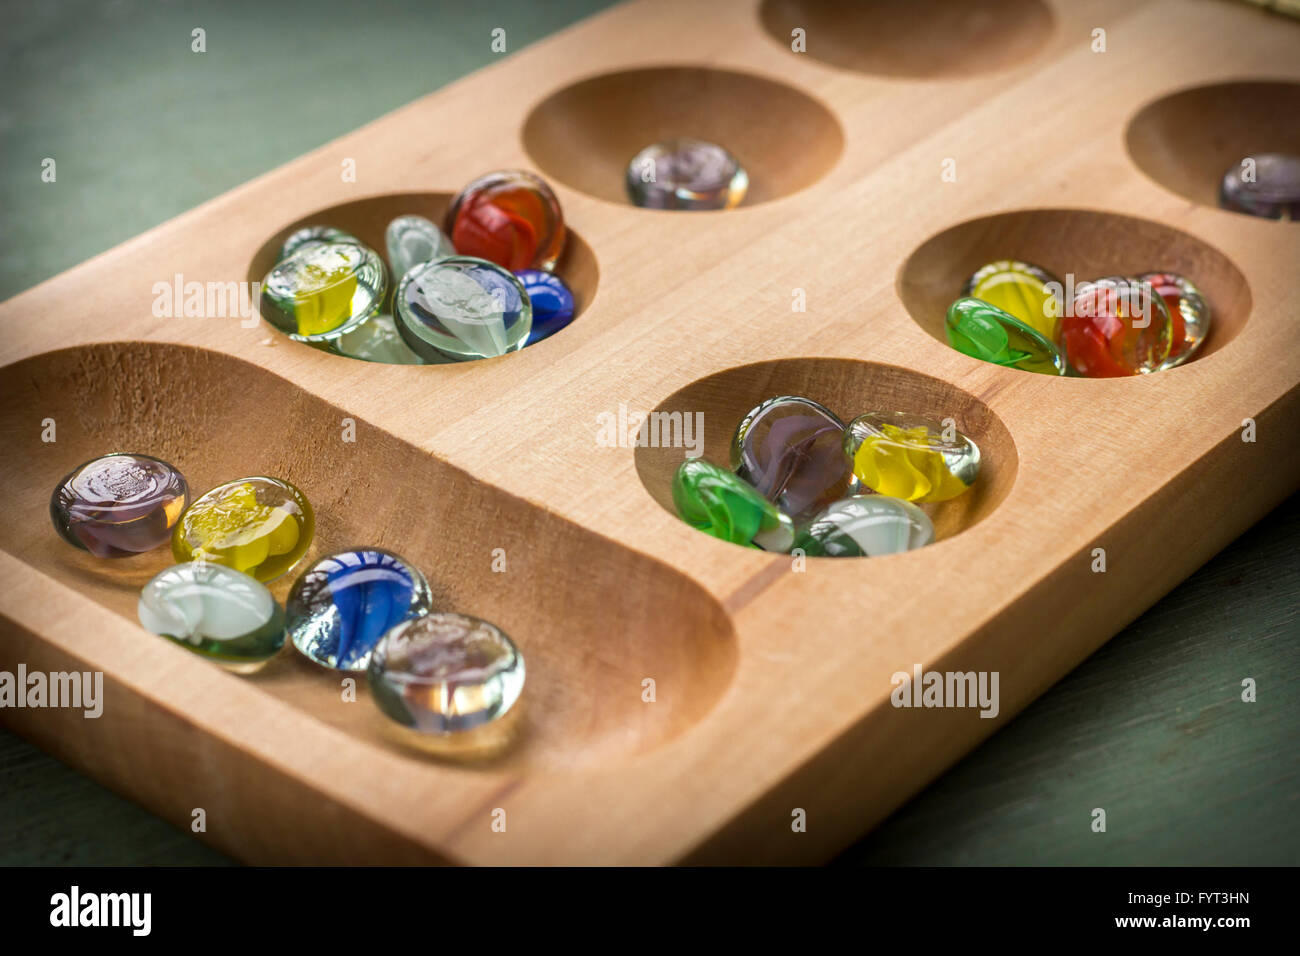 Traditional Mancala boardgame with glass pieces on wooden table - Stock Image